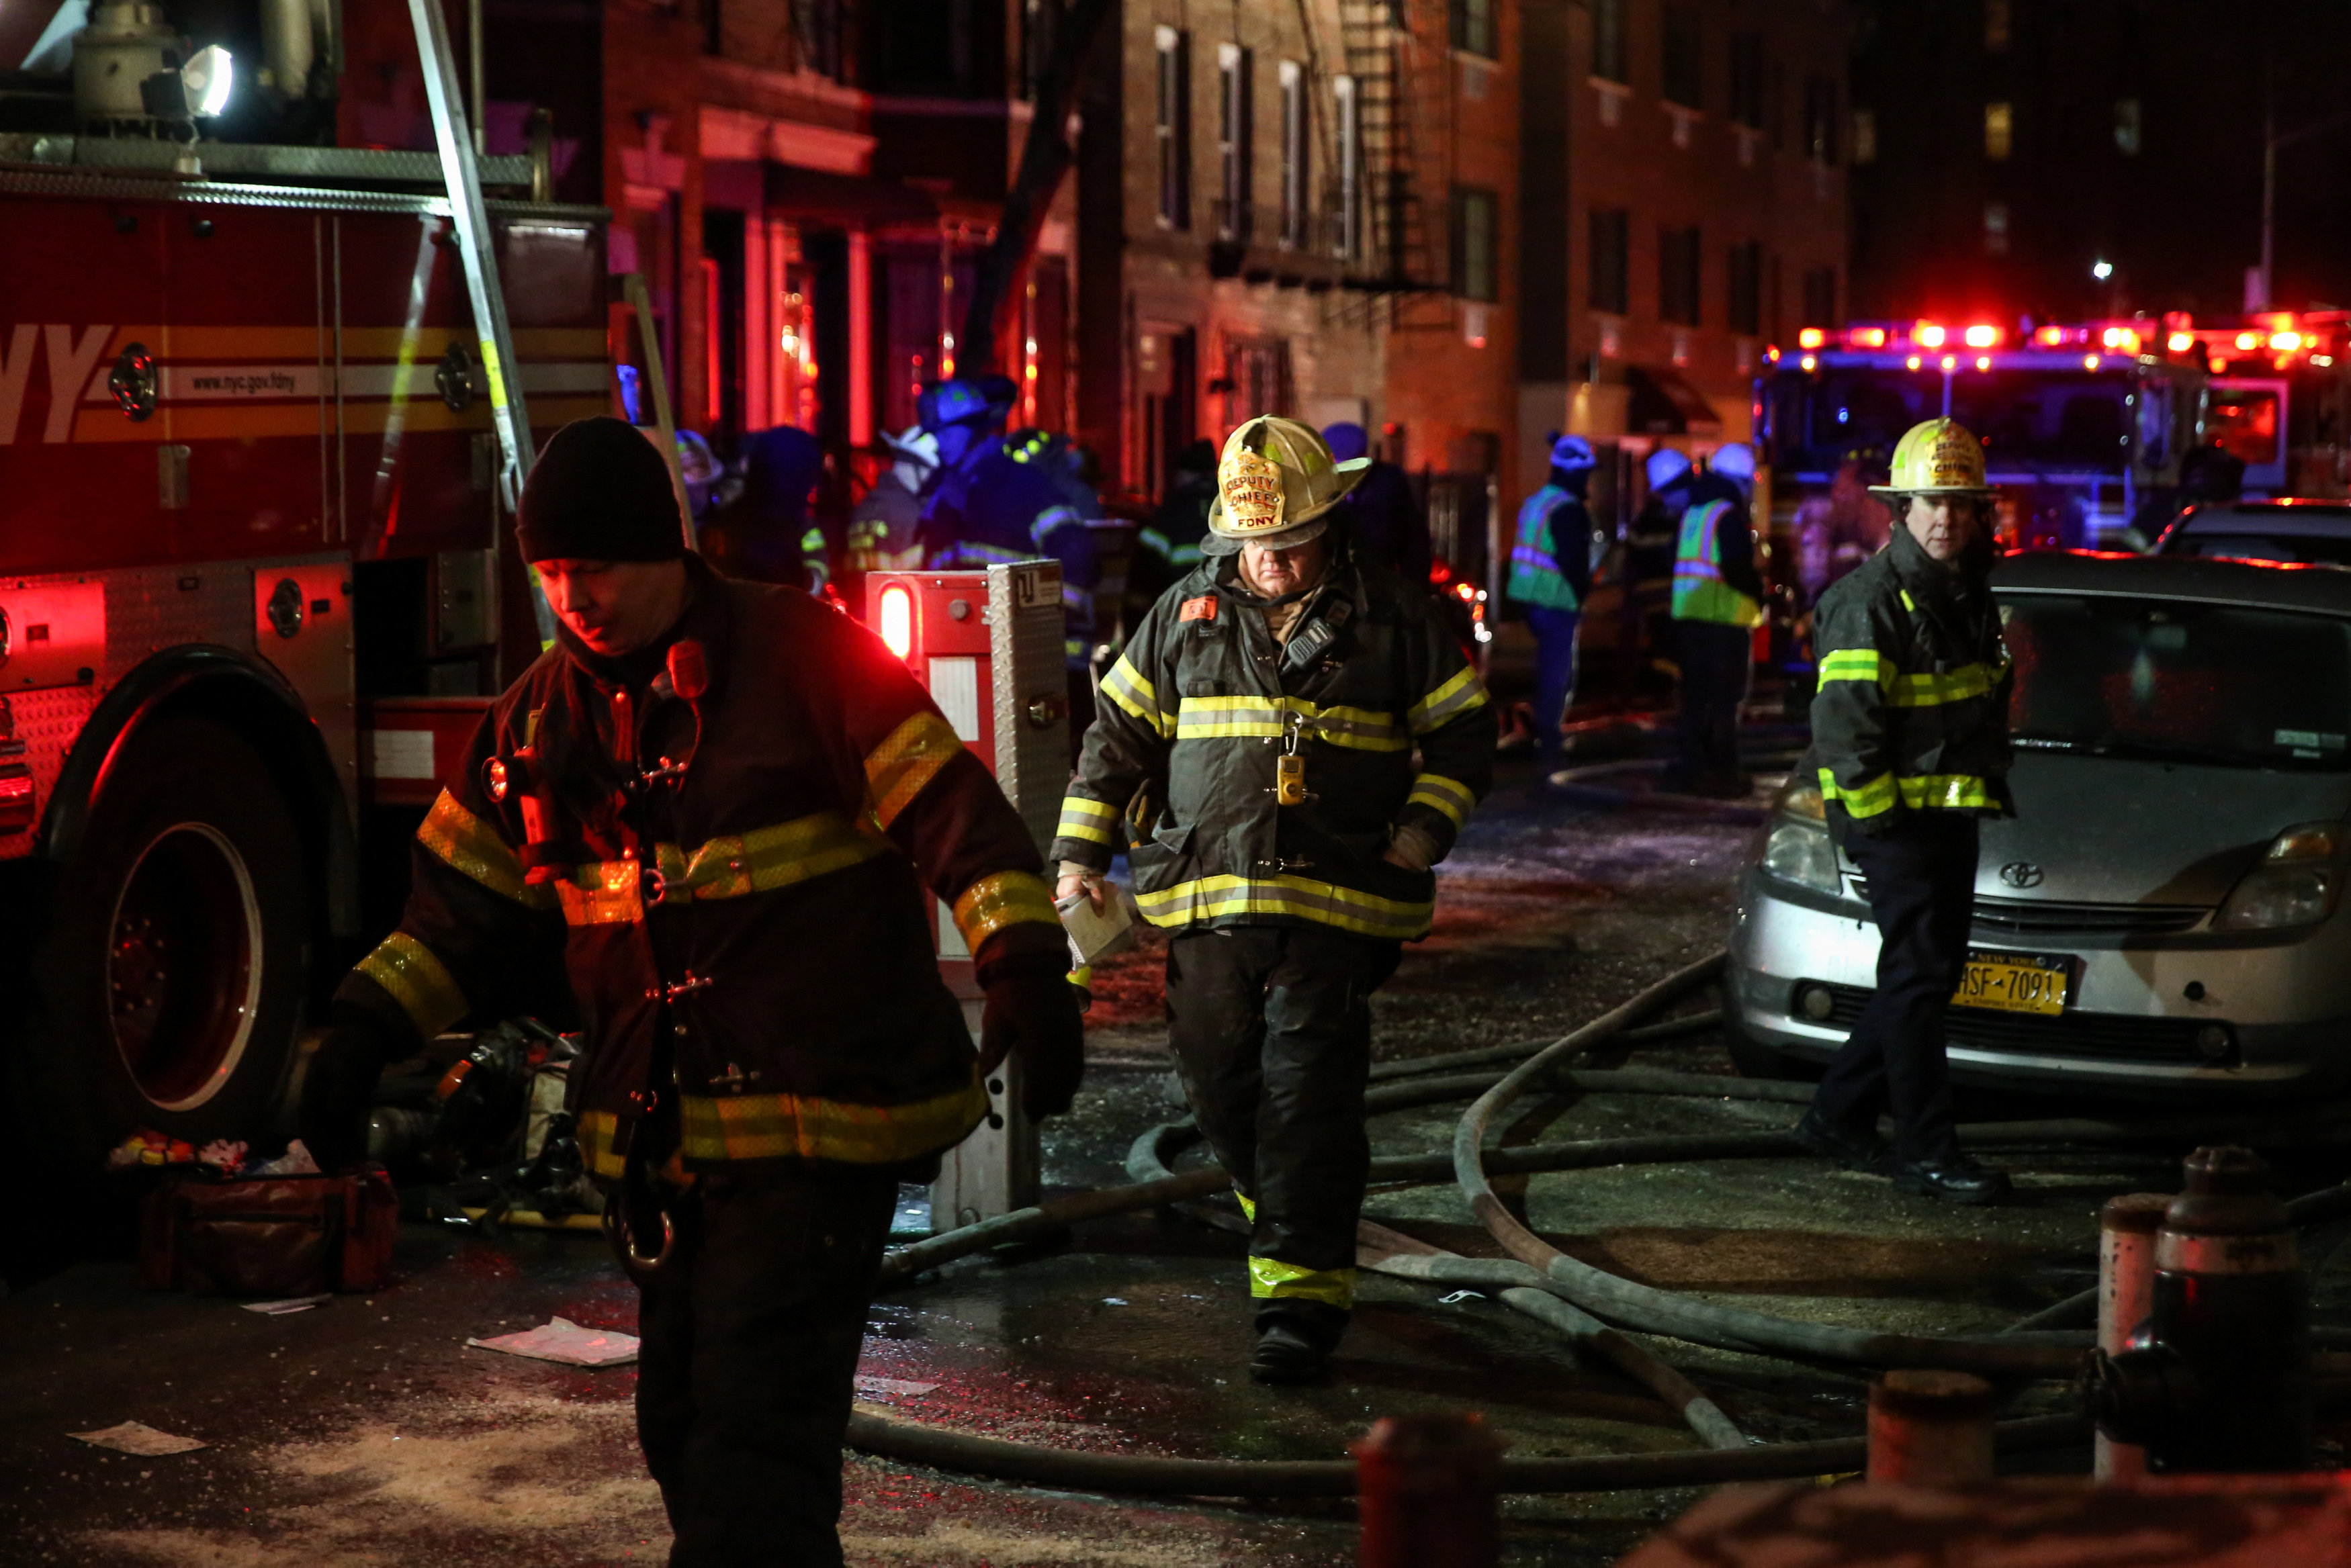 Fire Department of New York (FDNY) personnel work on the scene of an apartment fire in Bronx, New York, U.S., December 28, 2017.